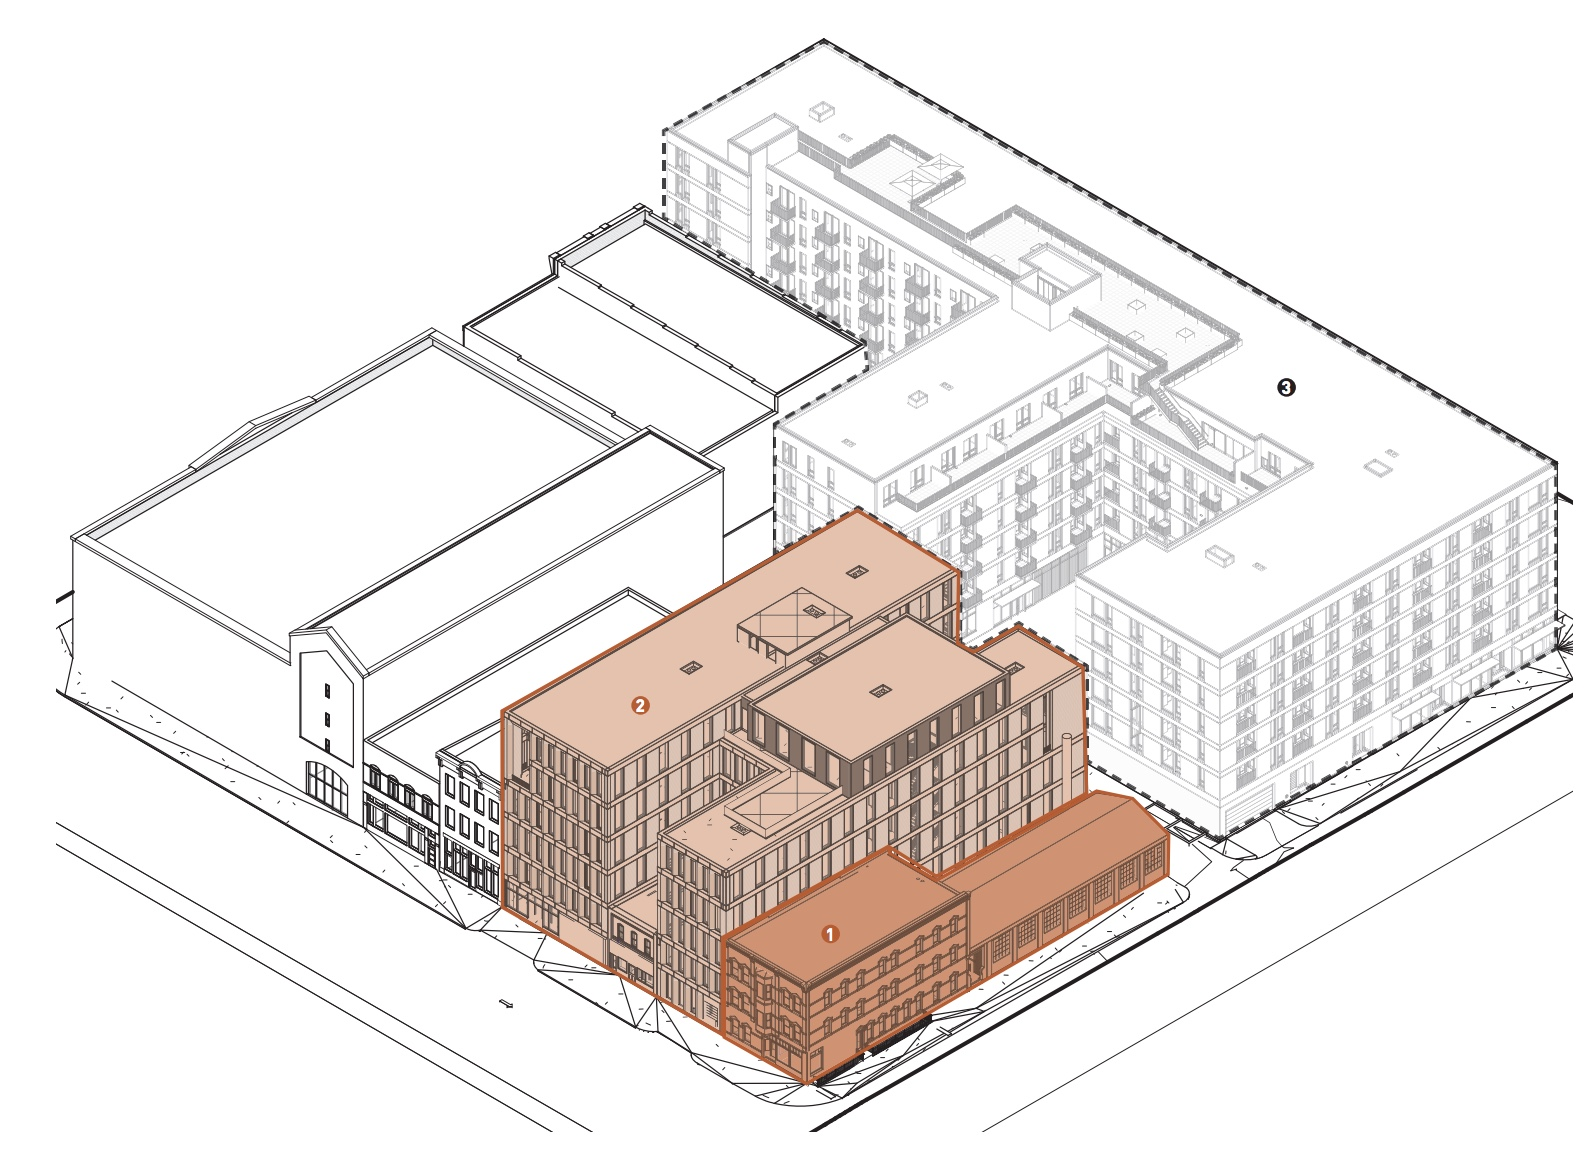 The Commutator Foundry Development (highlighted) and the adjacent new mixed-use development.